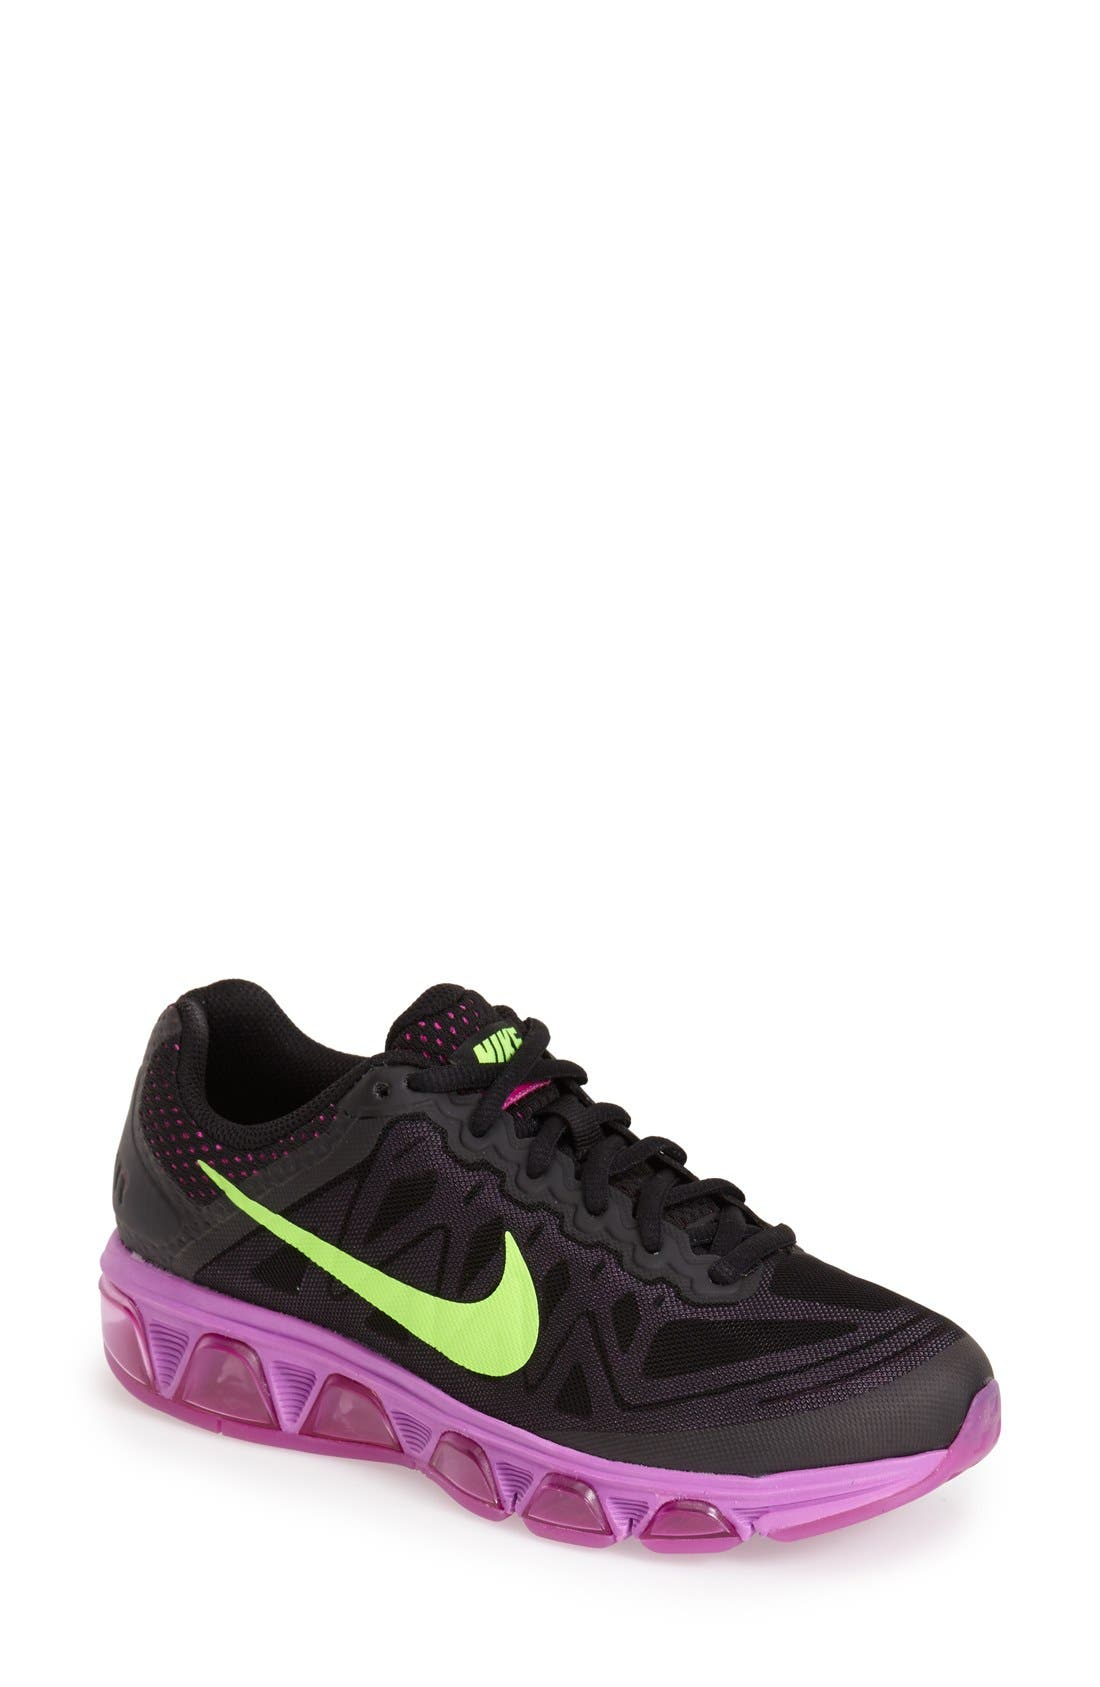 Alternate Image 1 Selected - Nike 'Air Max Tailwind 7' Running Shoe (Women)